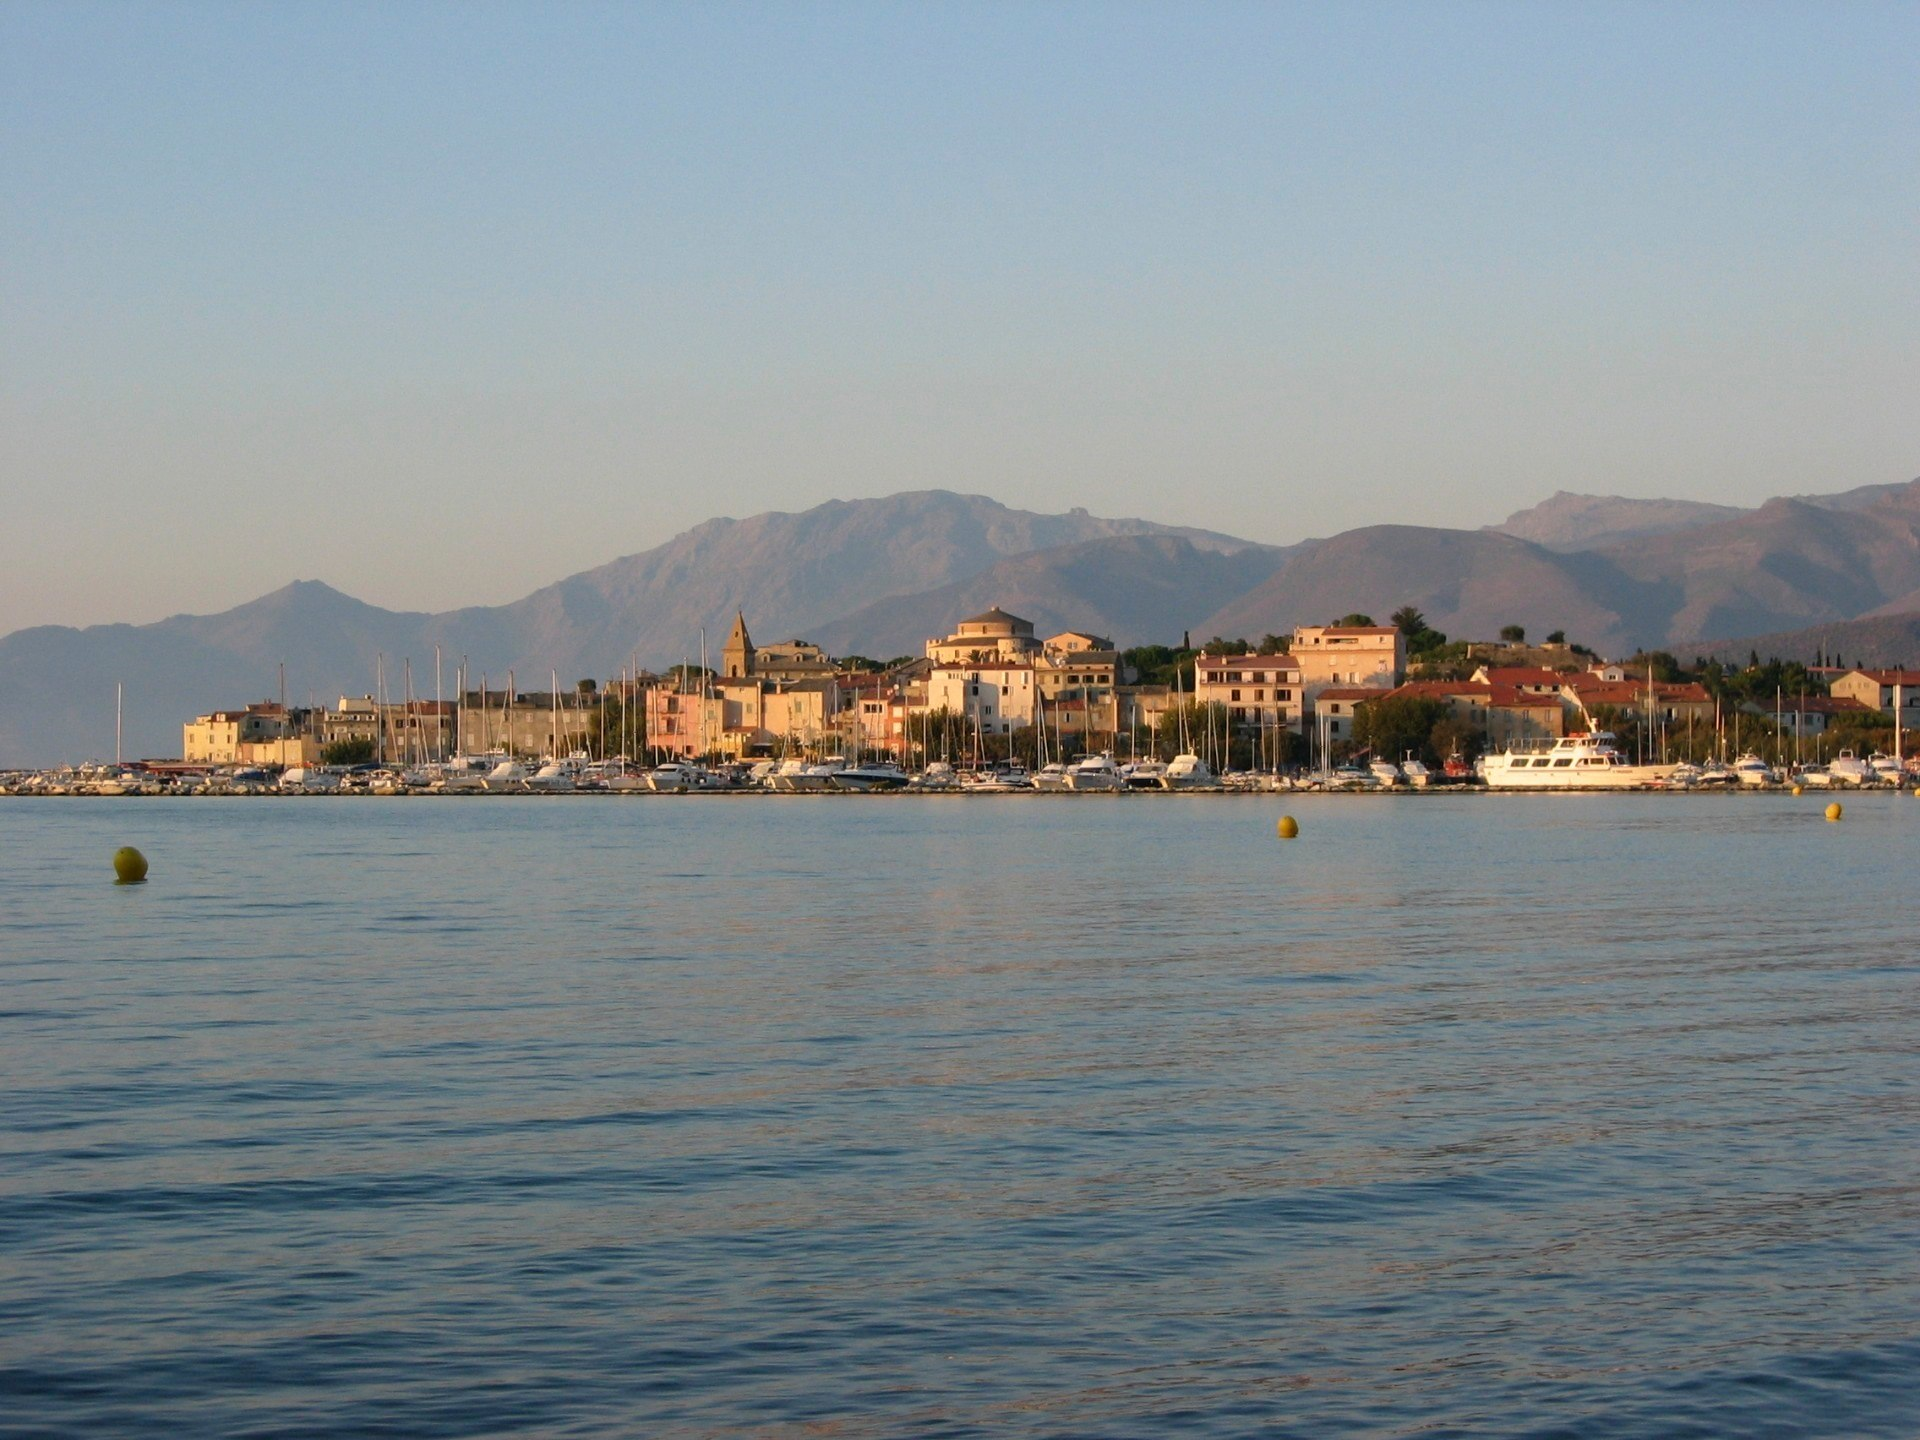 The sun is setting down on St. Florent